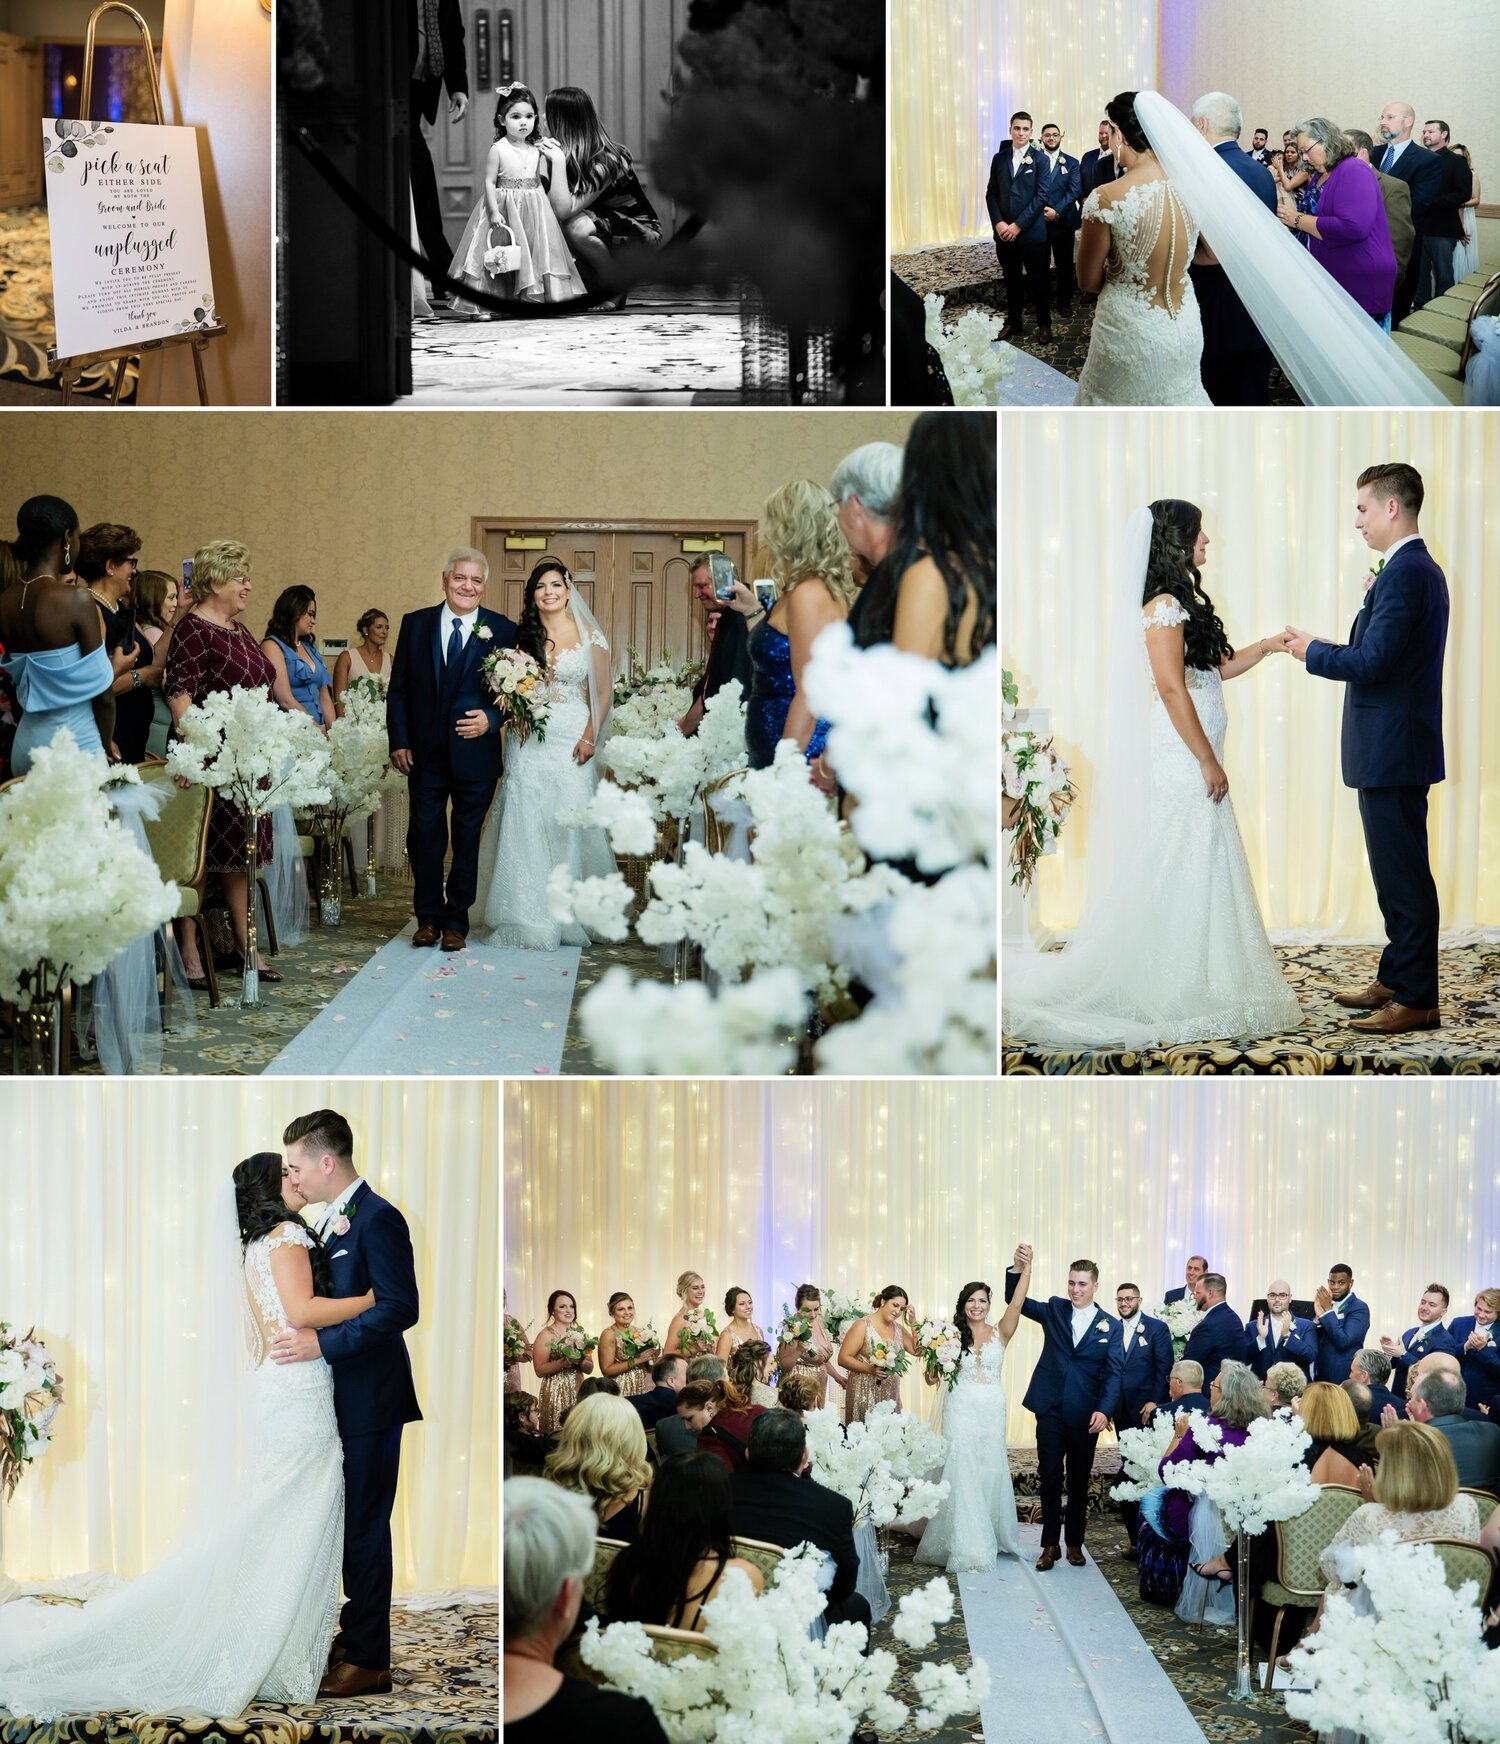 Wedding ceremony at Meridian Banquets and Conference Center in Rolling Meadows, Illinois.